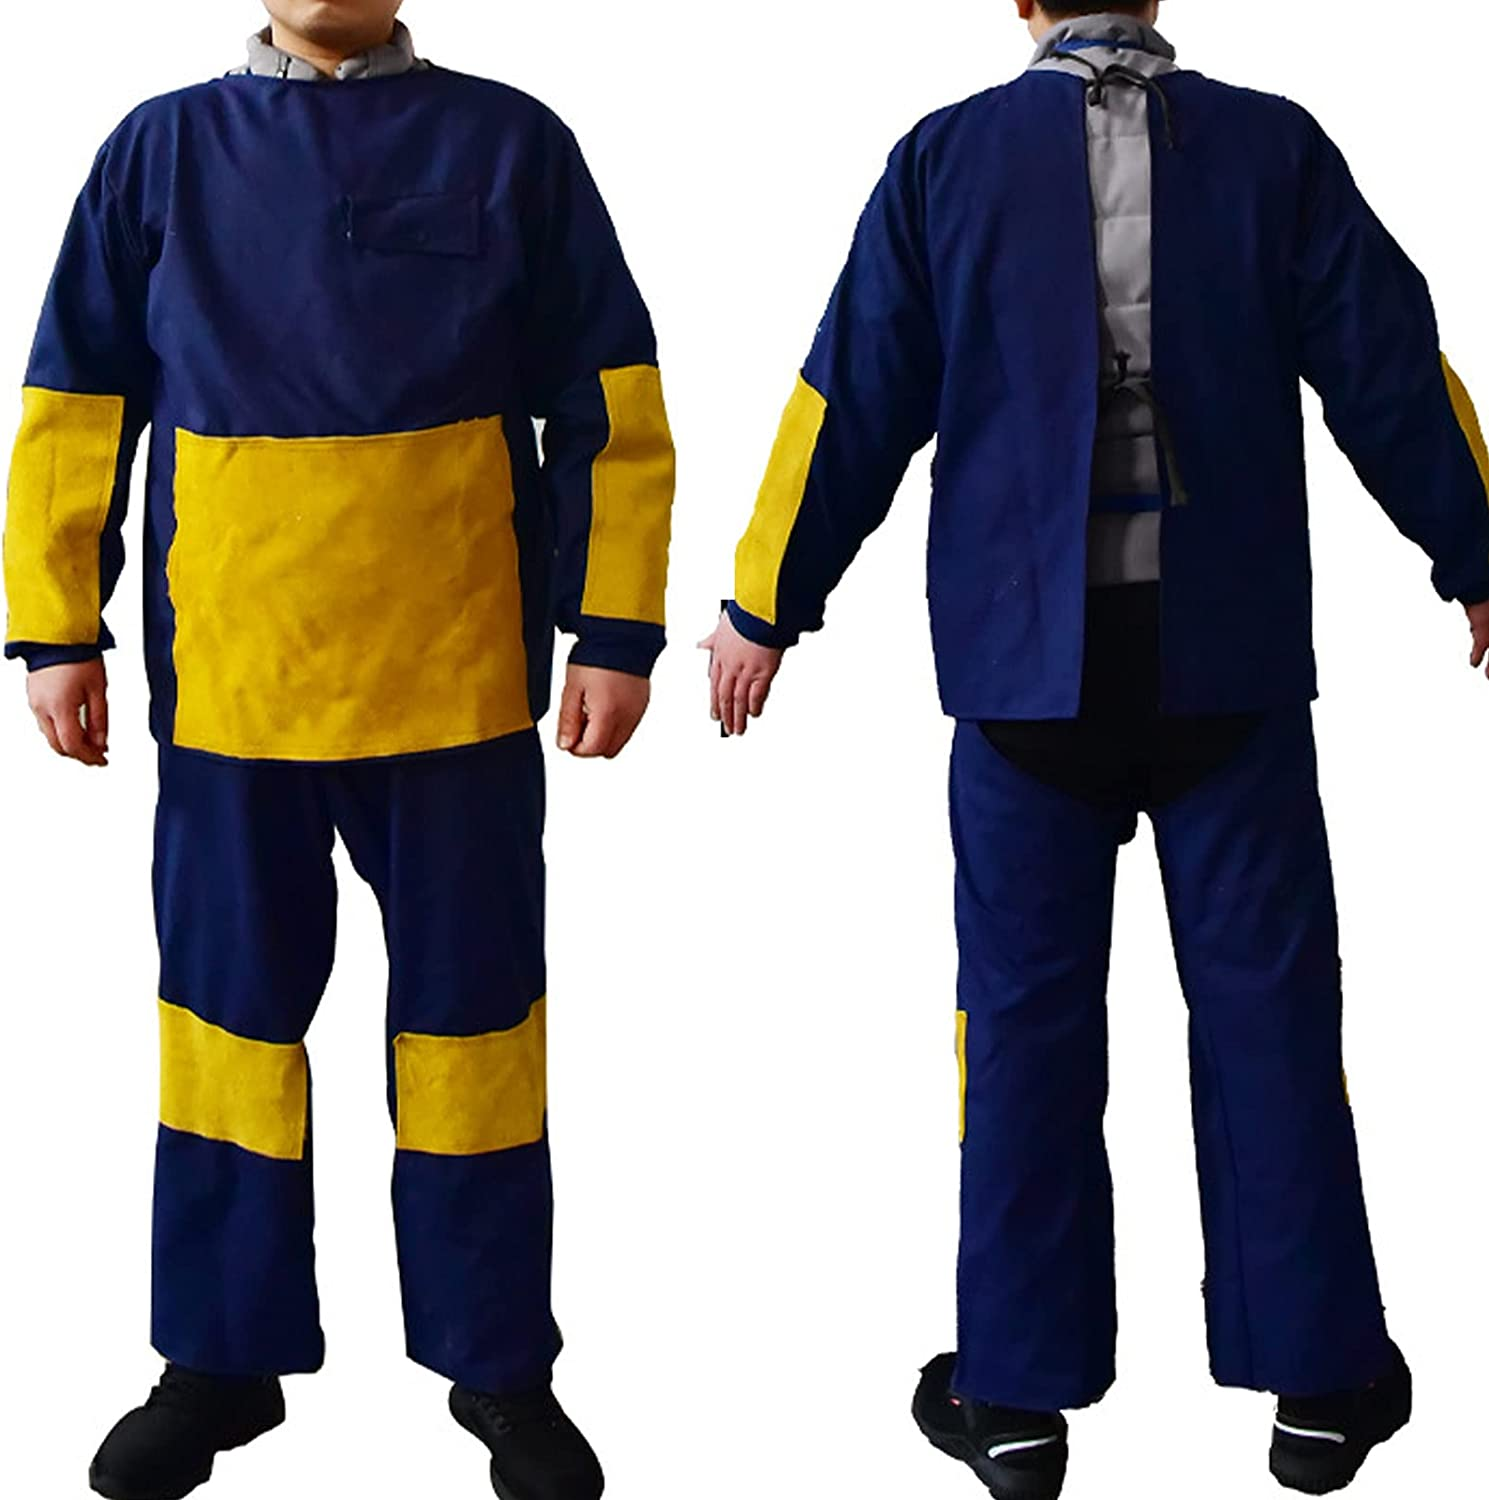 TXYJ Welding Denver Mall Suit Wearable Heat Leather Smock New Orleans Mall Fabric Canvas S